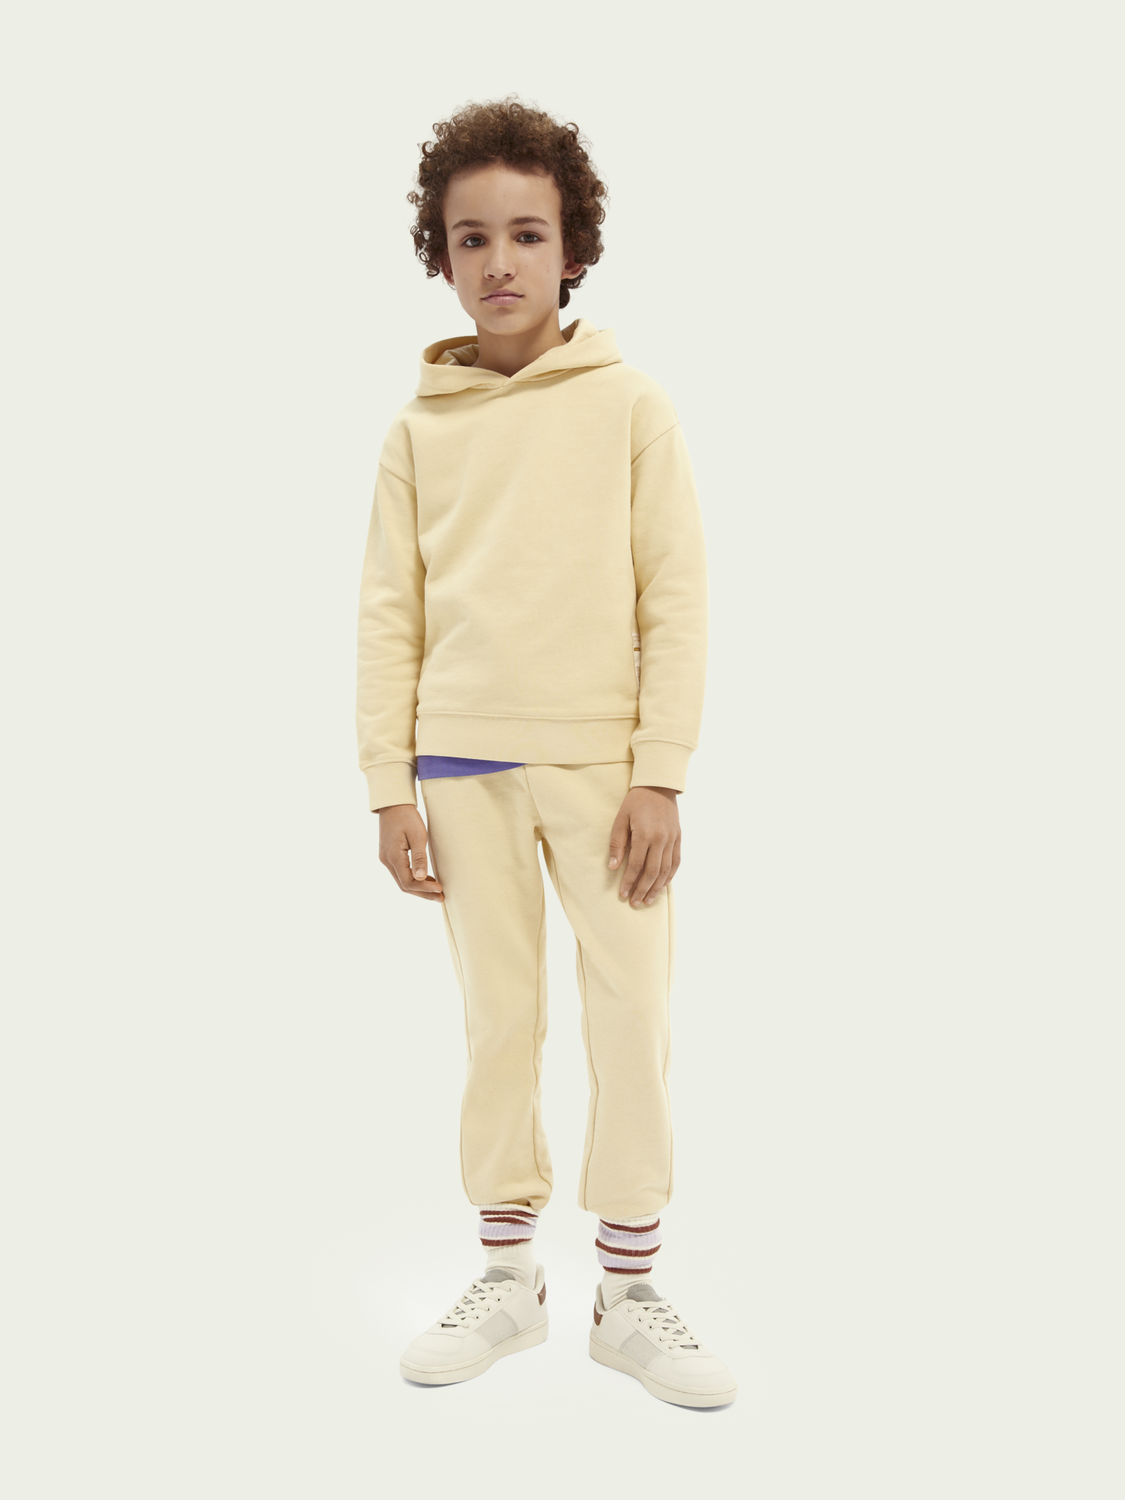 Kids Unisex organic cotton sweatpants